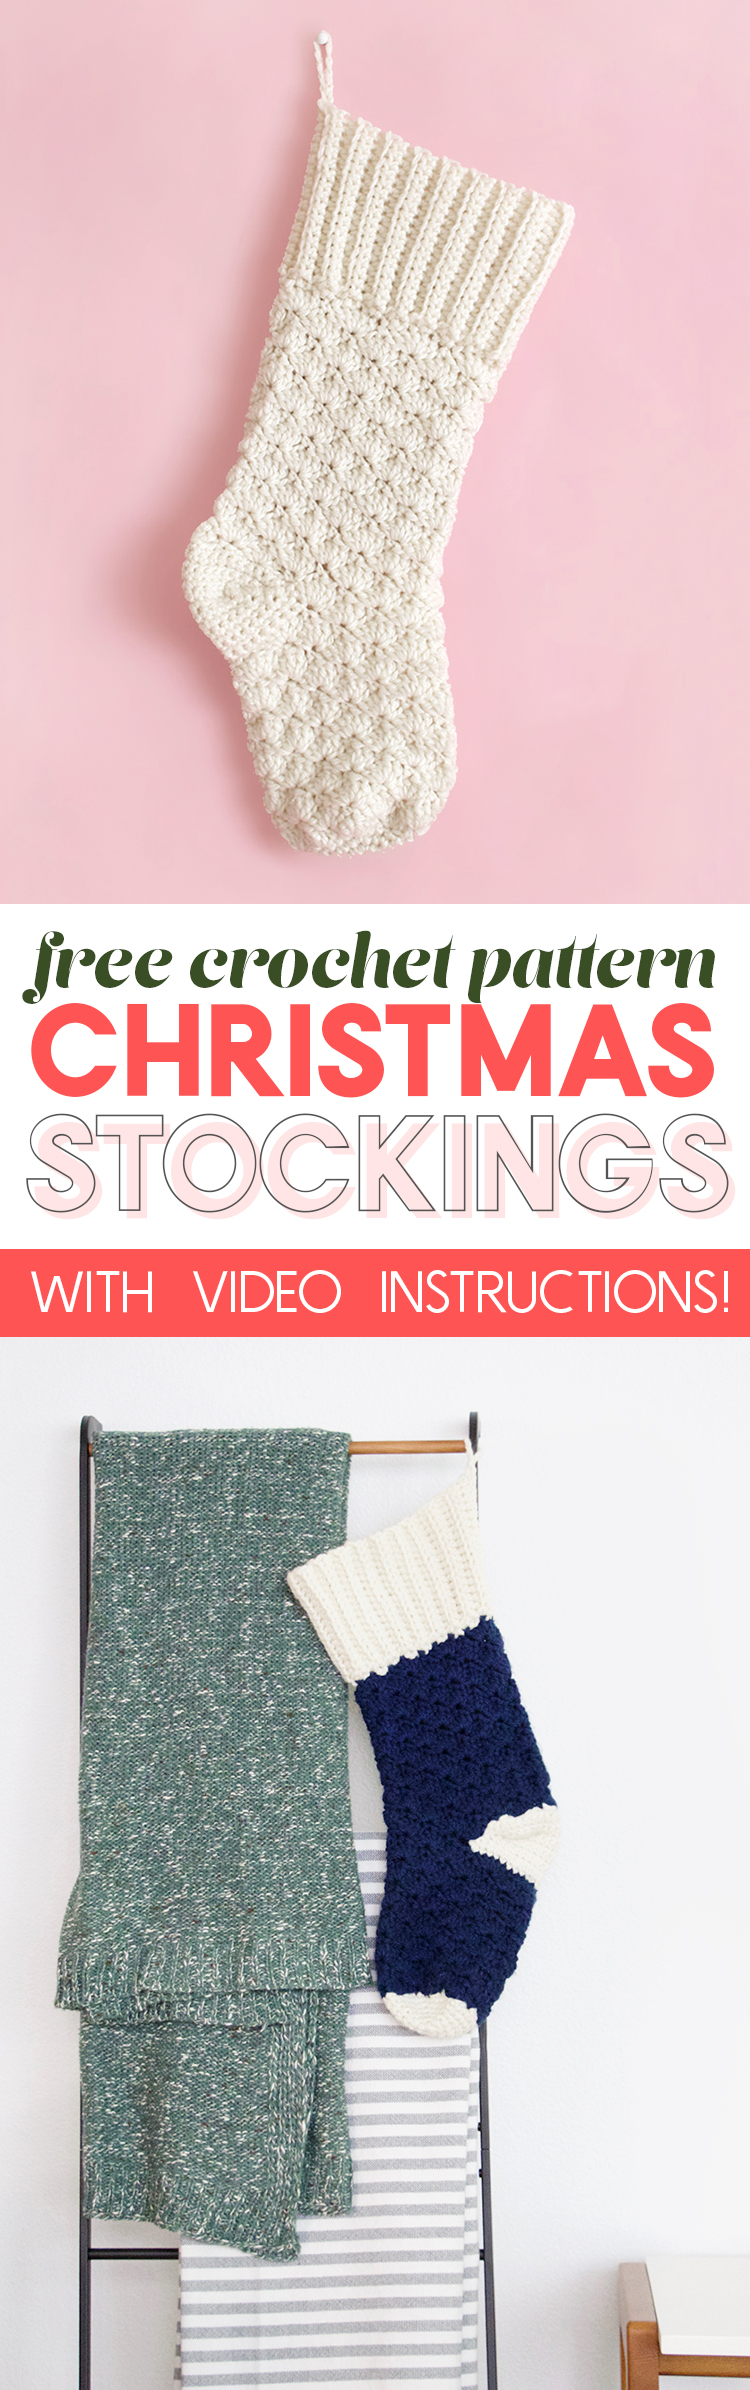 crochet christmas stocking - free pattern and video